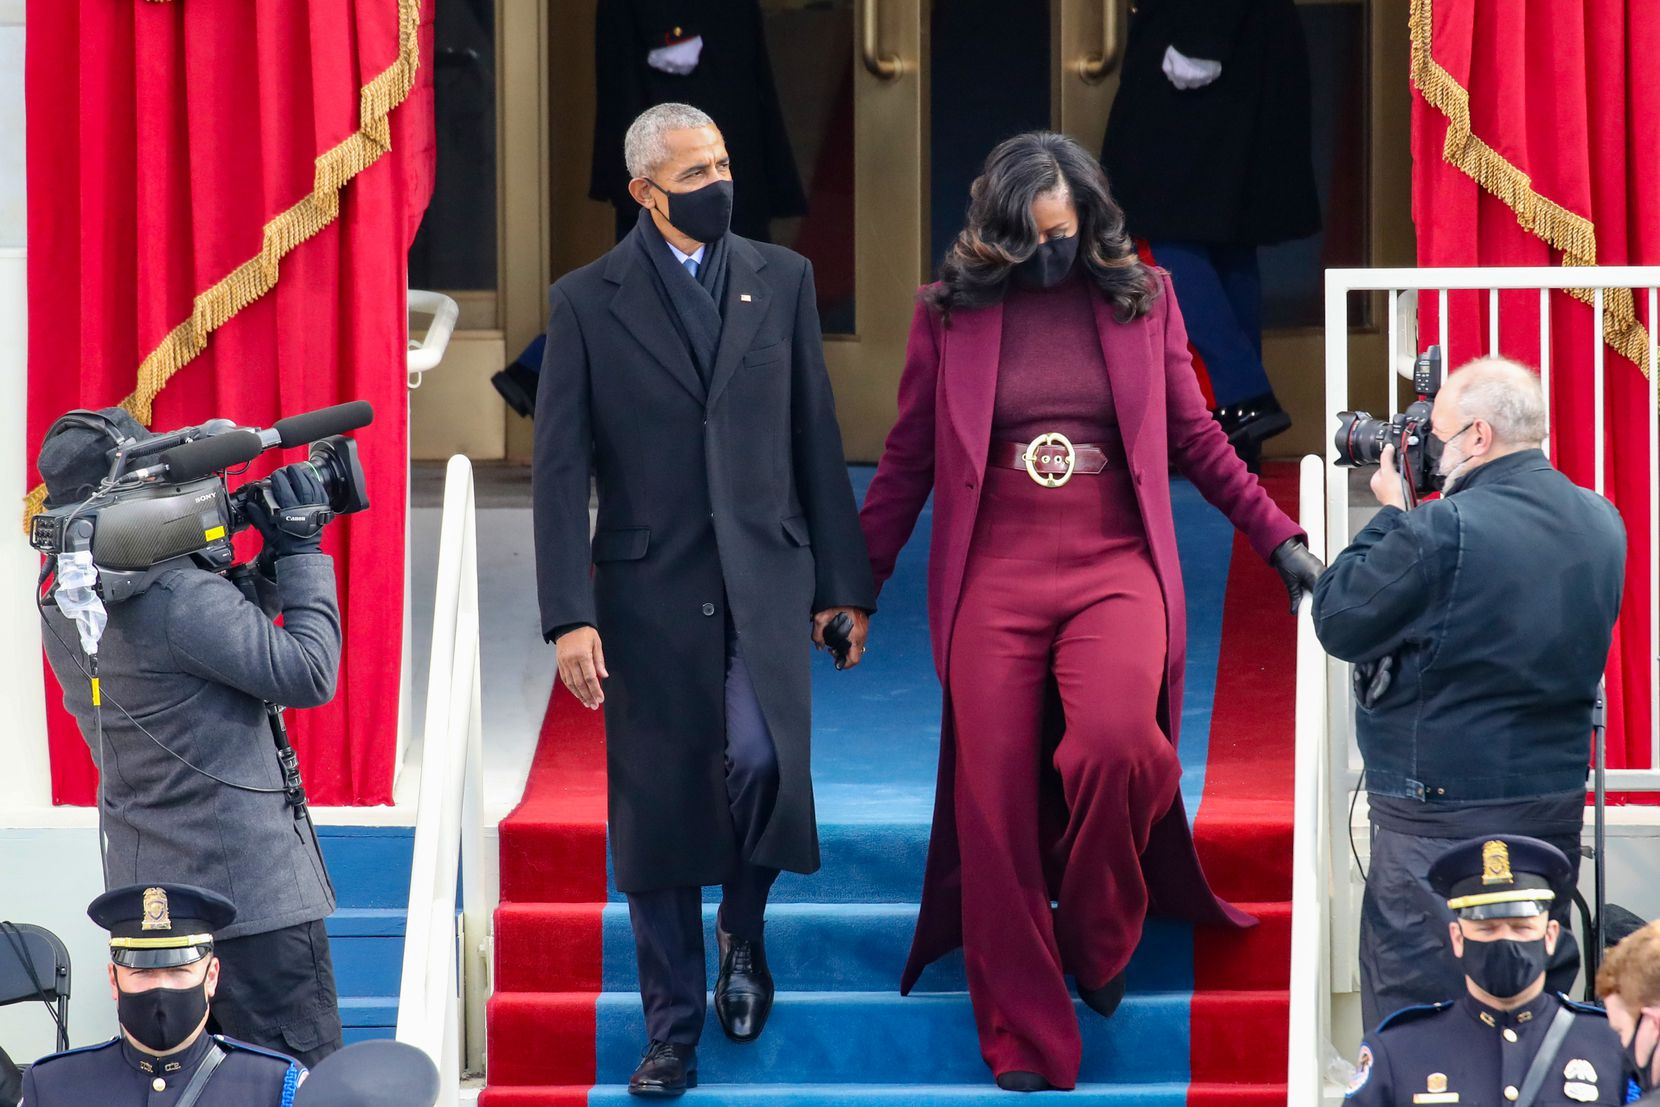 Former U.S. President Barack Obama and former first lady Michelle Obama arrive at the inauguration of U.S. President-elect Joe Biden on Jan. 20.